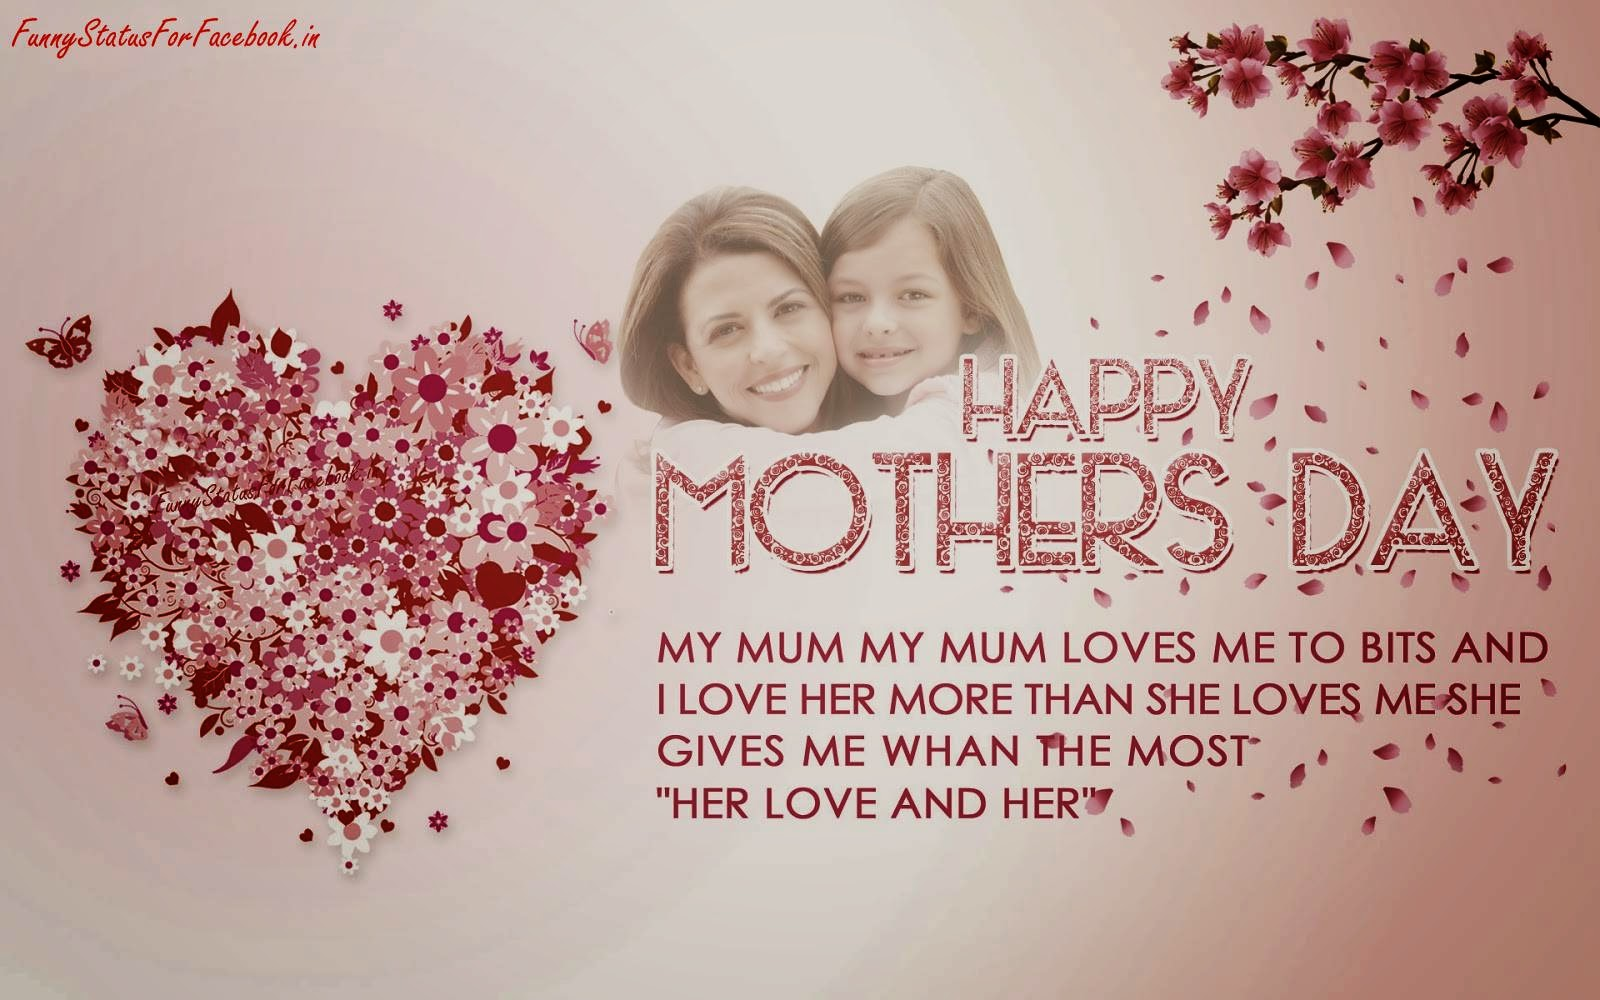 Happy mothers day quotes greeting cards wallpapers with messages happy mothers day quotes greeting cards wallpapers with messages kristyandbryce Images